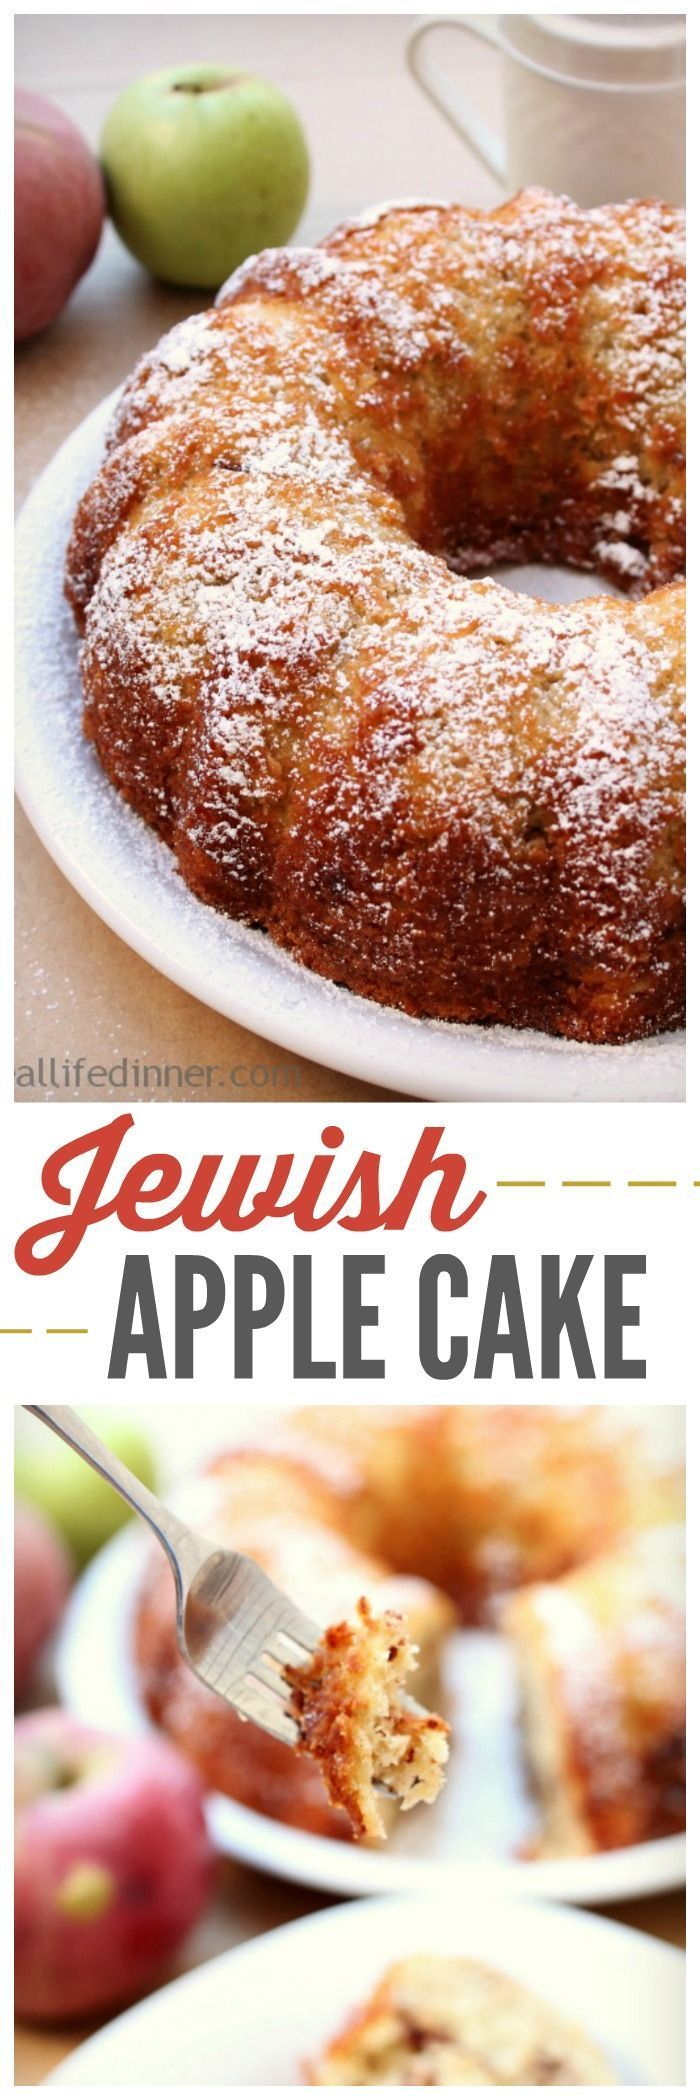 This Jewish Apple Cake Recipe is the most delicious Apple cake you will ever have. Grated Apples, Cinnamon baked in a bundt pan. Incredibly moist. ~ http://reallifedinner.com